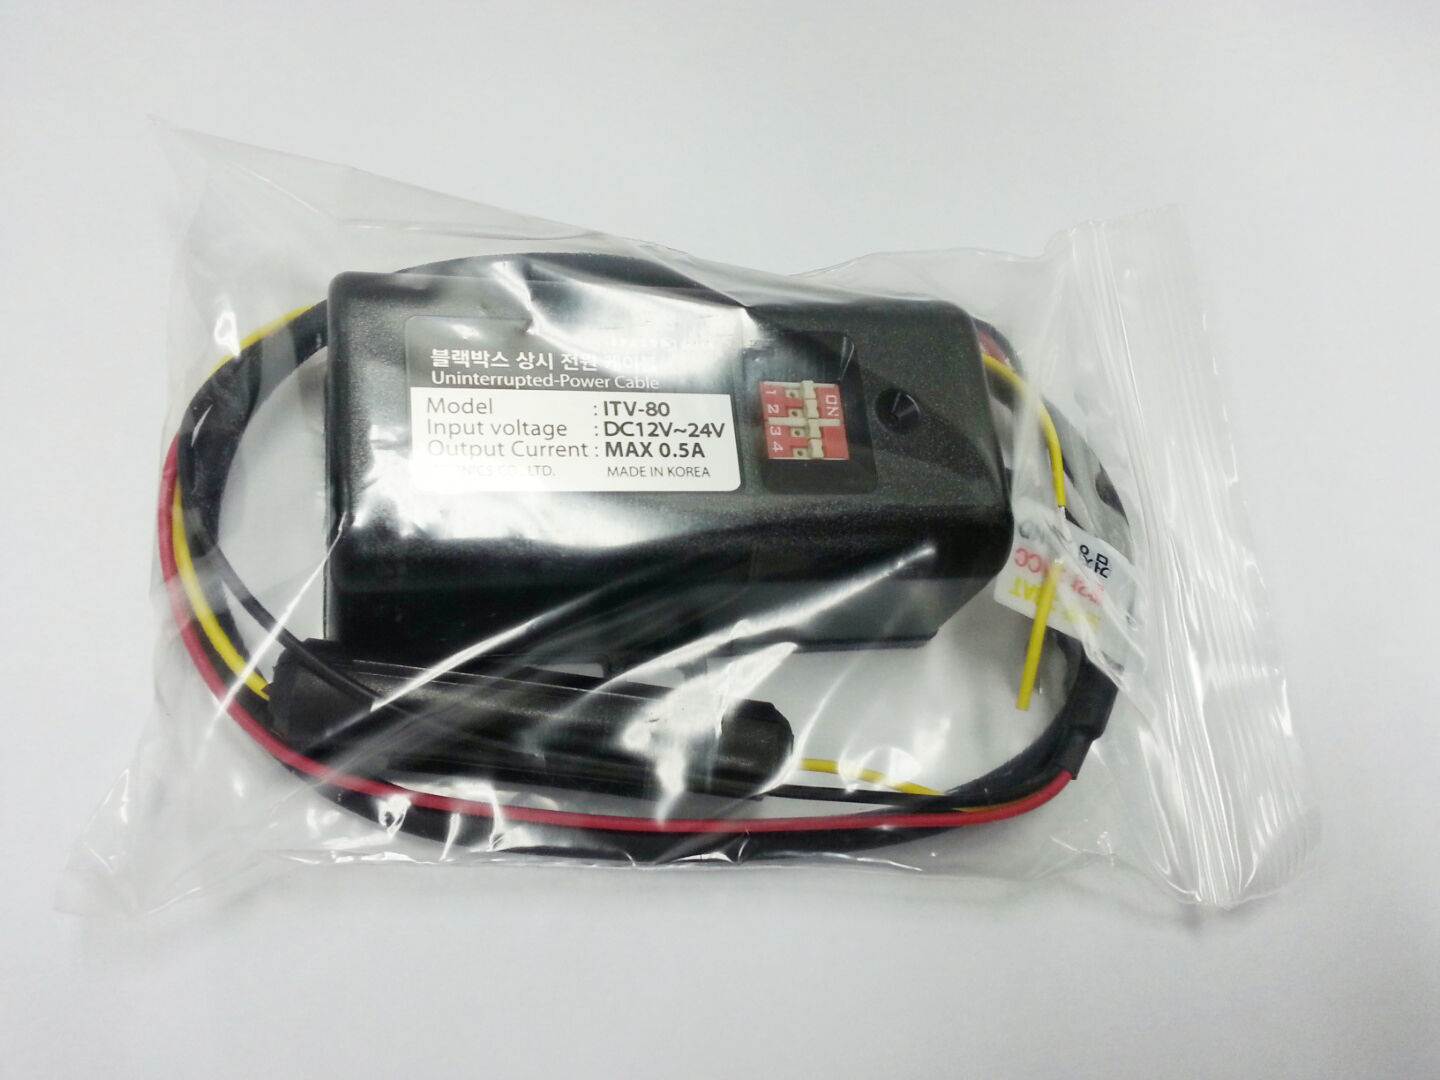 ITRONICS ITV-80 Uninterruped Power Cable UPC for ITB-100HD Car Black Box DVR